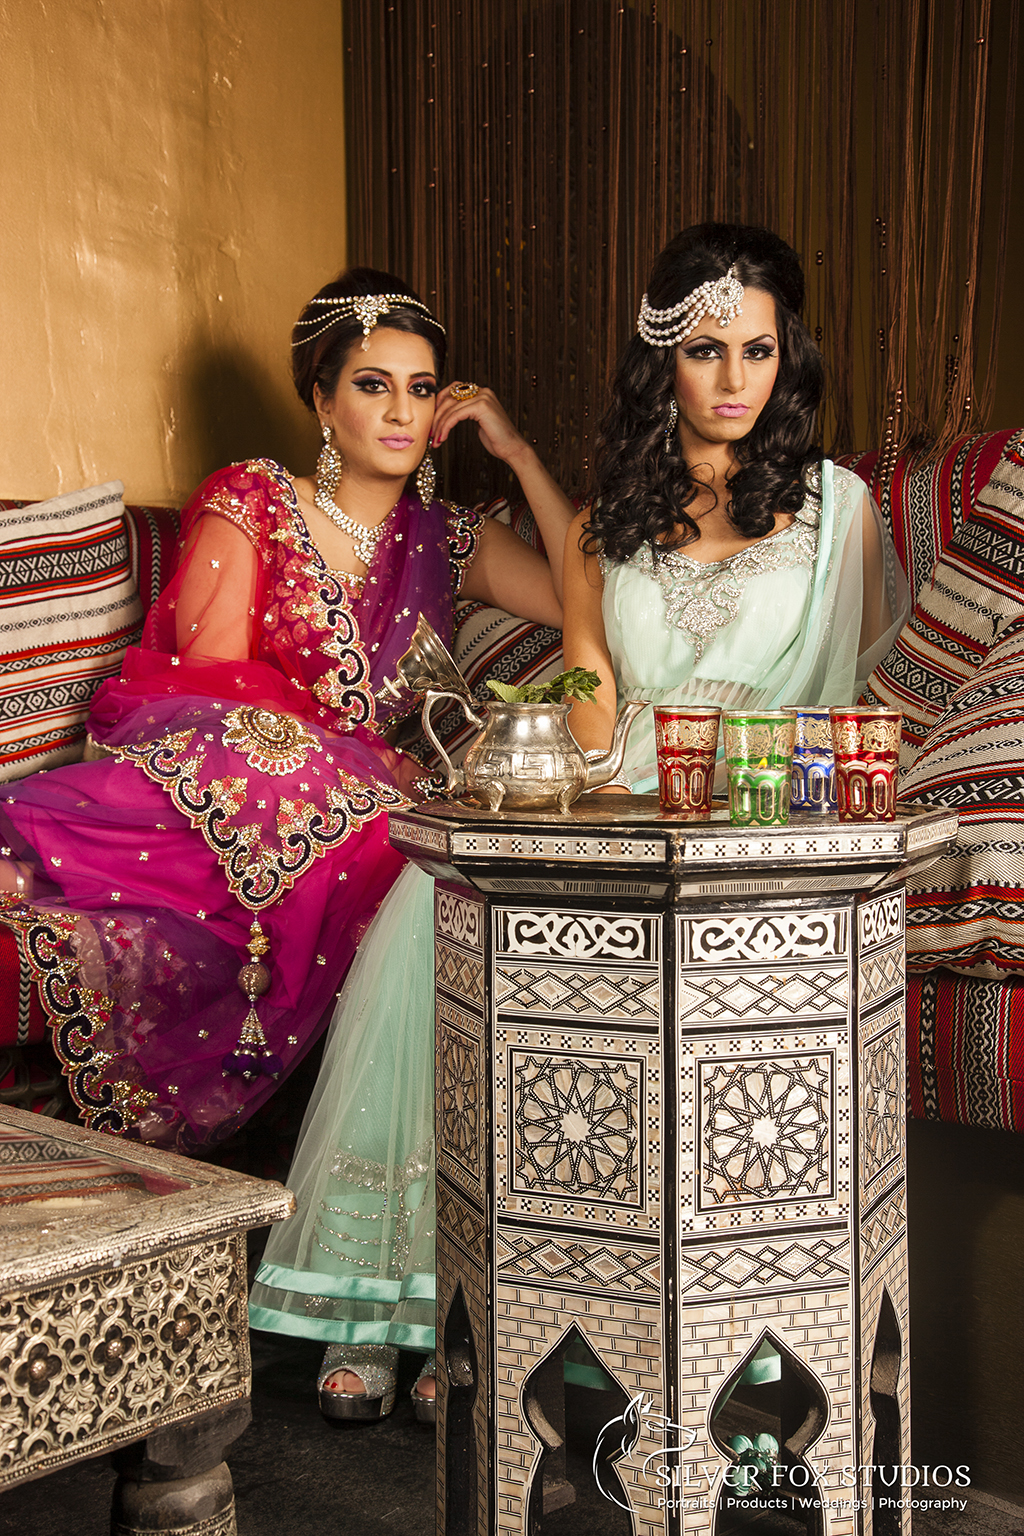 Middle East Inspired Portrait | Silver Fox Studios